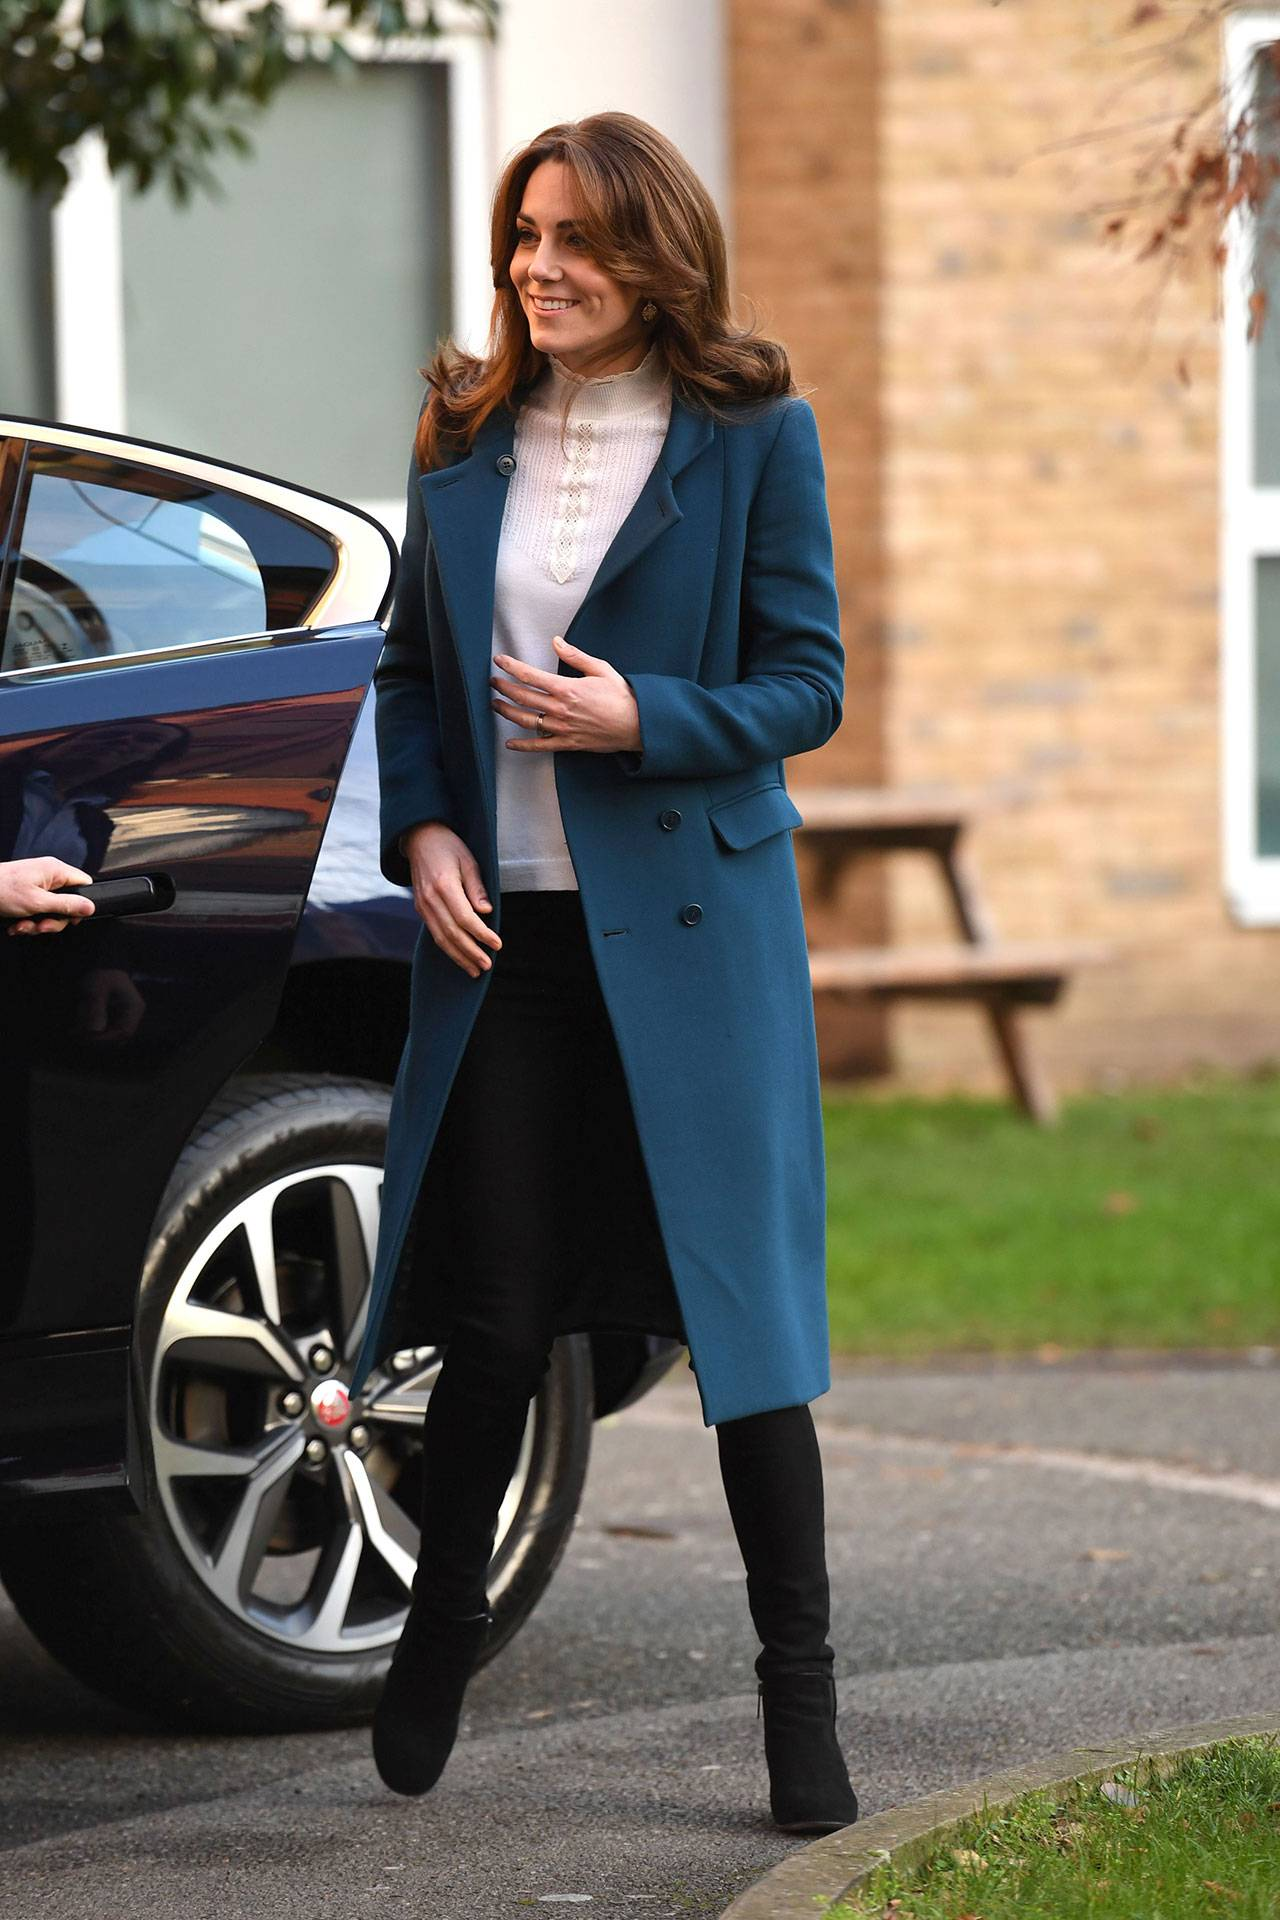 a thematic outing as kate wears military finest for defence centre visit tatler kate wears military finest